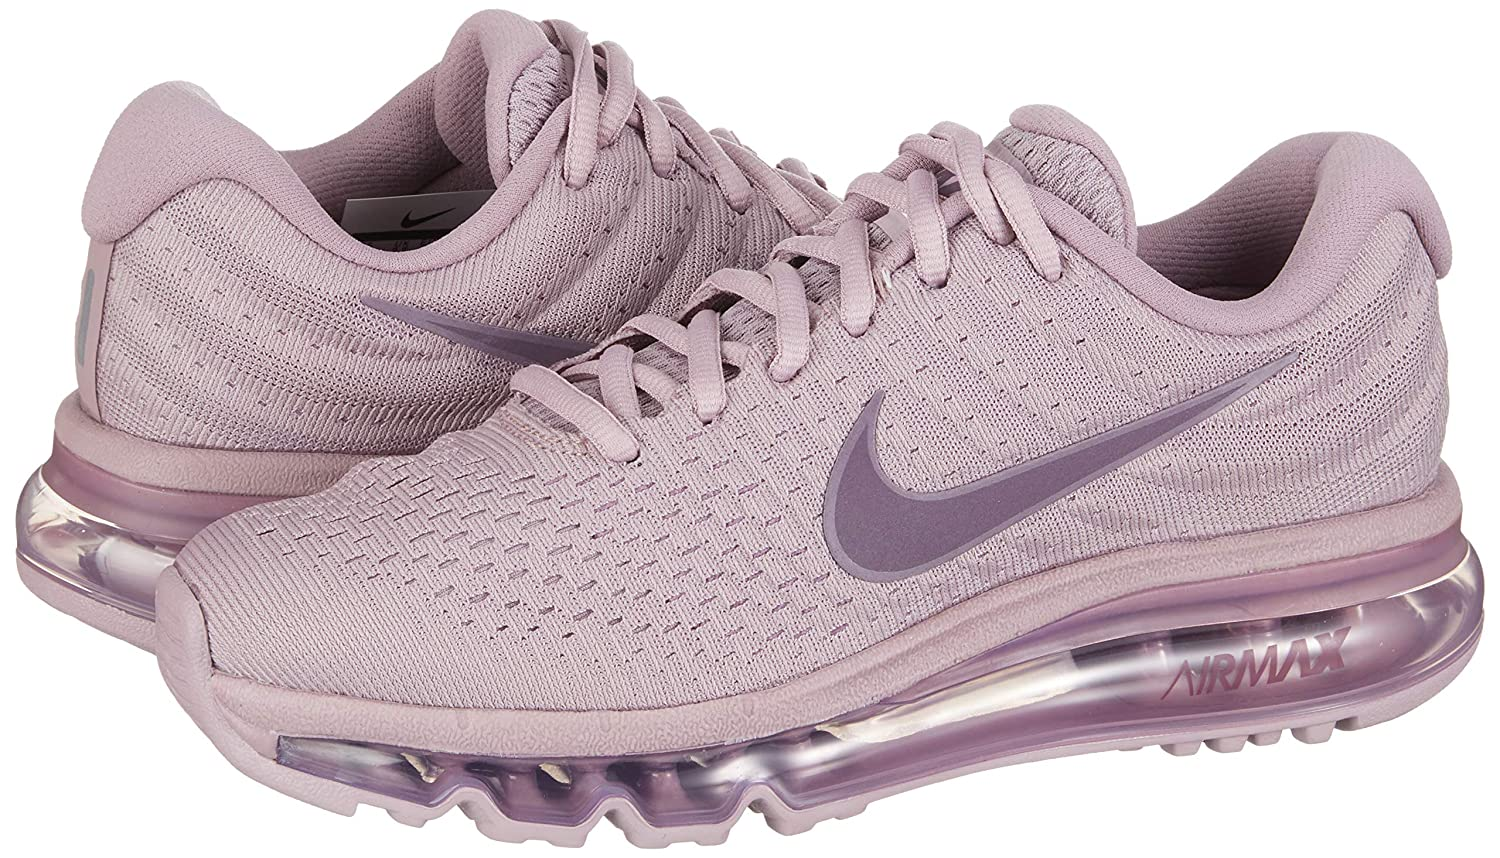 quality design cc576 f0653 Nike - WMNS Air Max 2017 - Color: Pink - Size: 7.5US ...